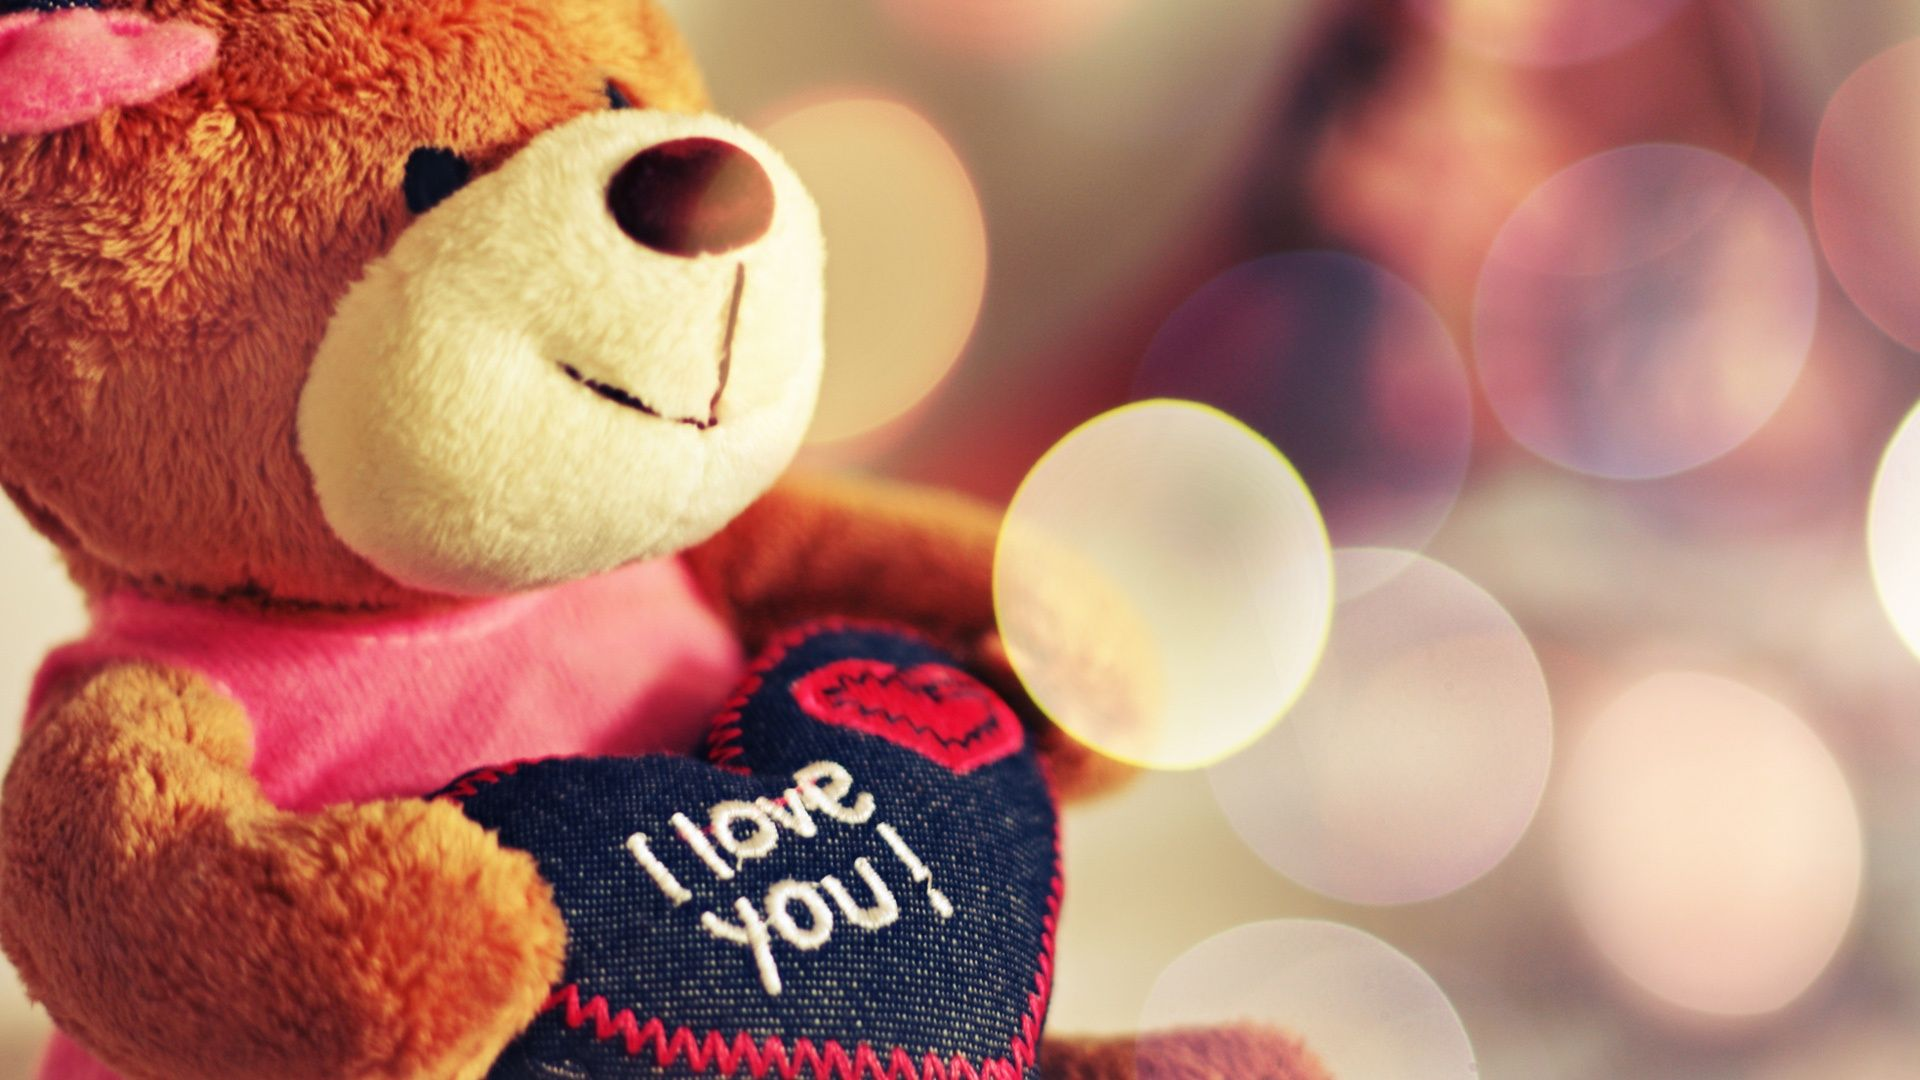 Hd wallpaper download love - Teddy Bear I Love You Hd 1080p Wallpapers Download